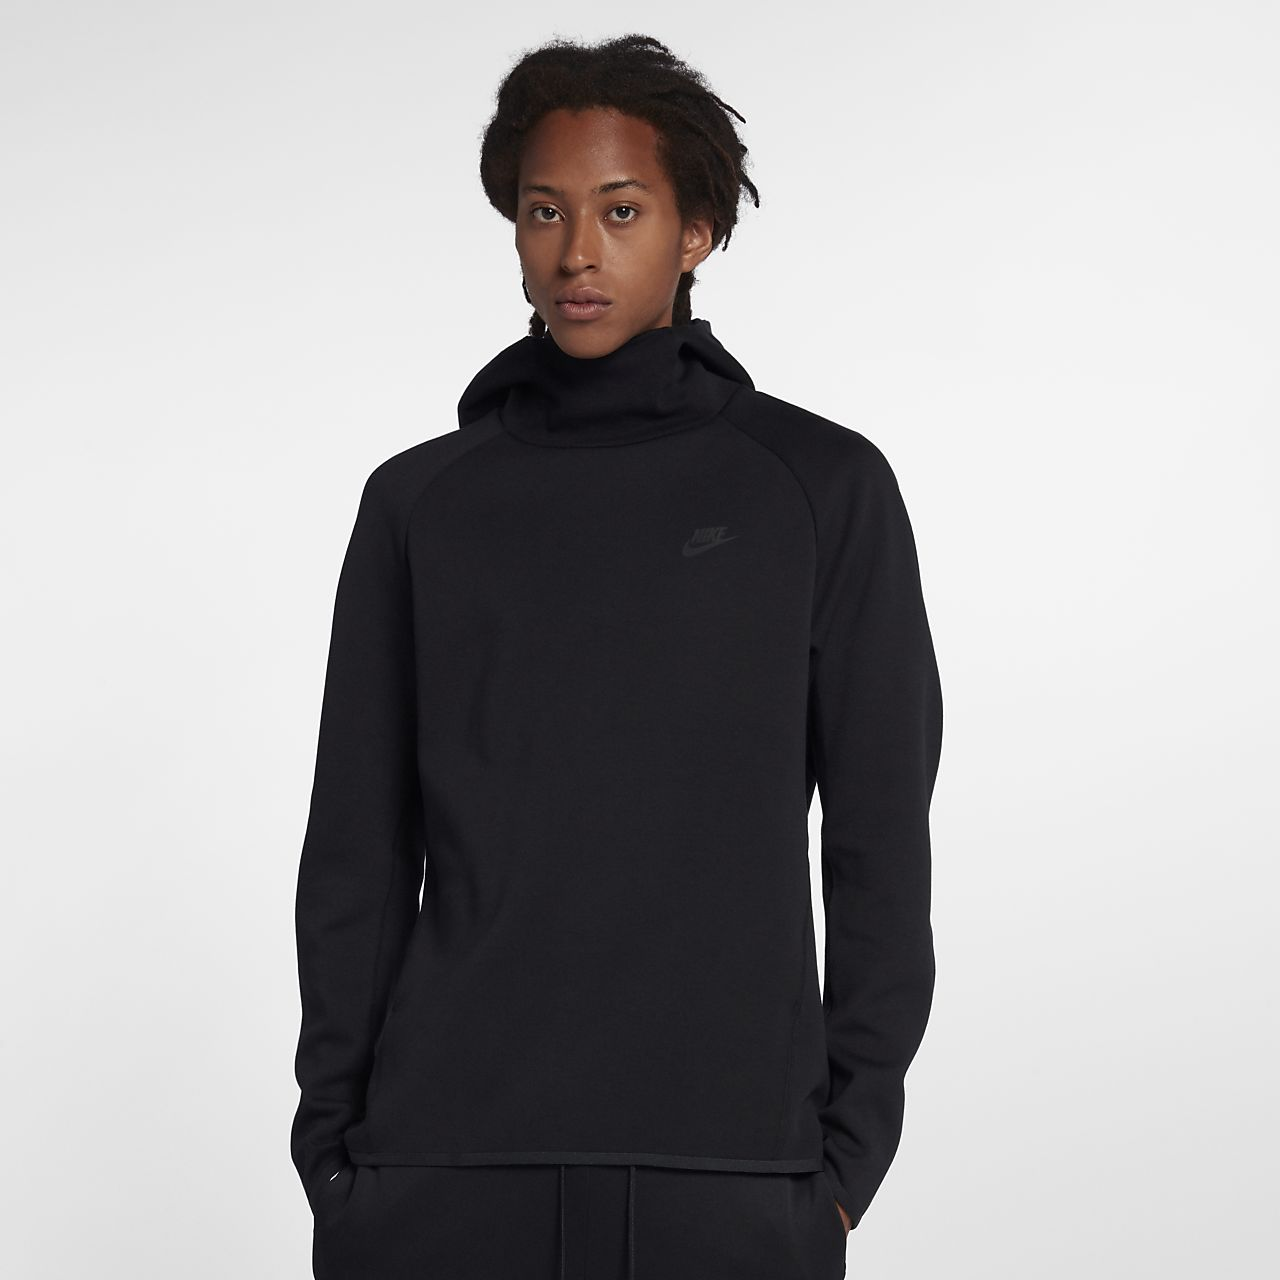 80d25a07f9f4 Nike Sportswear Tech Fleece Men s Pullover Hoodie. Nike.com GB